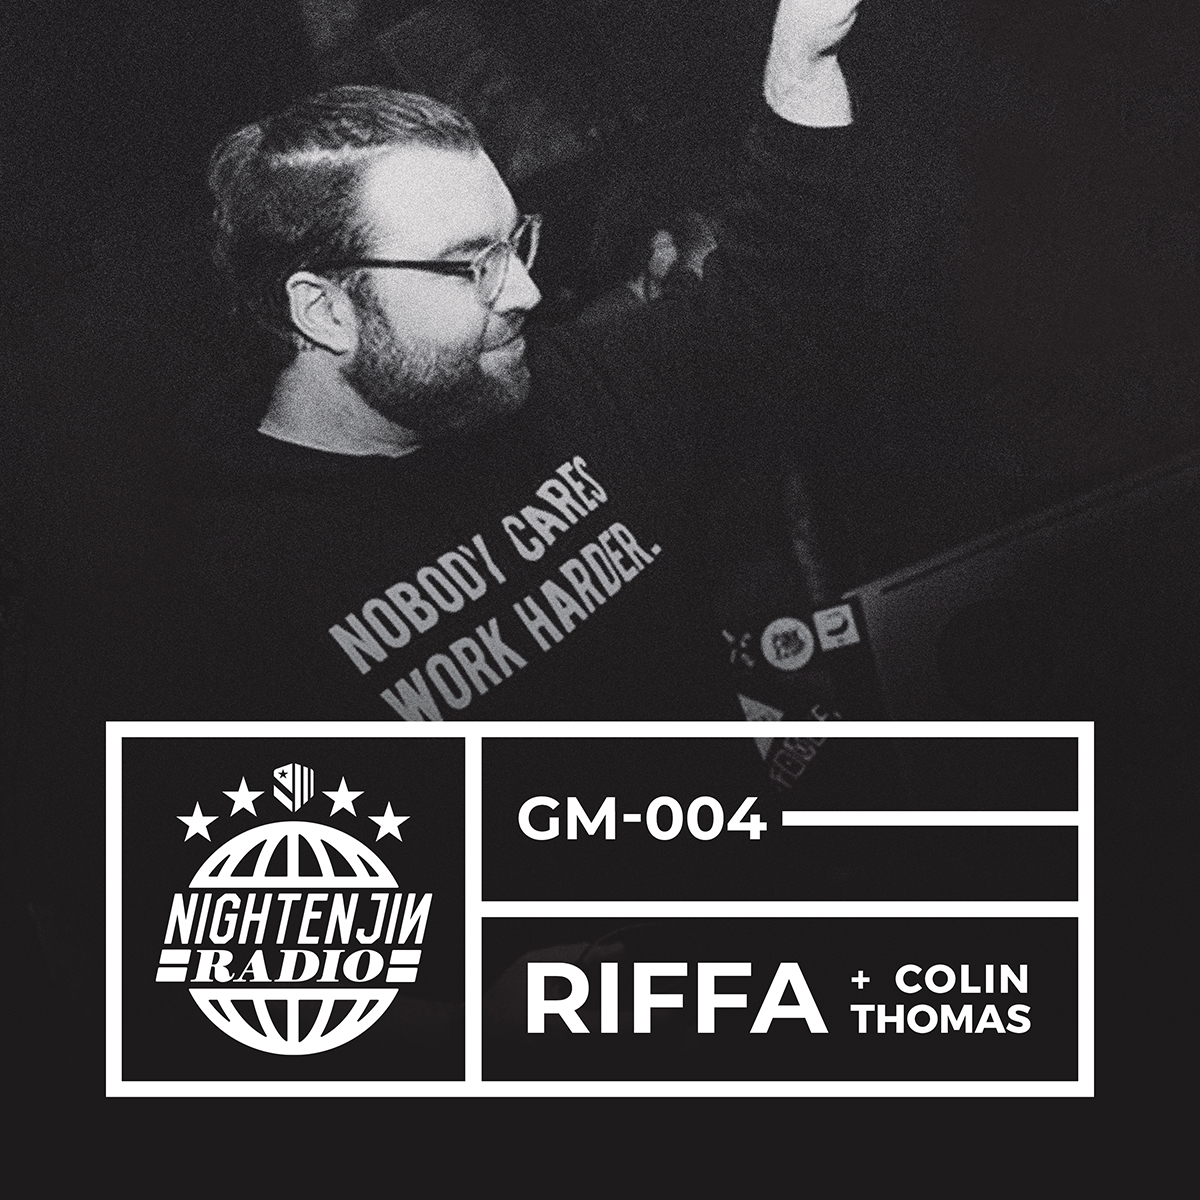 Nightenjin Radio GM-004: RIFFA + Colin Thomas